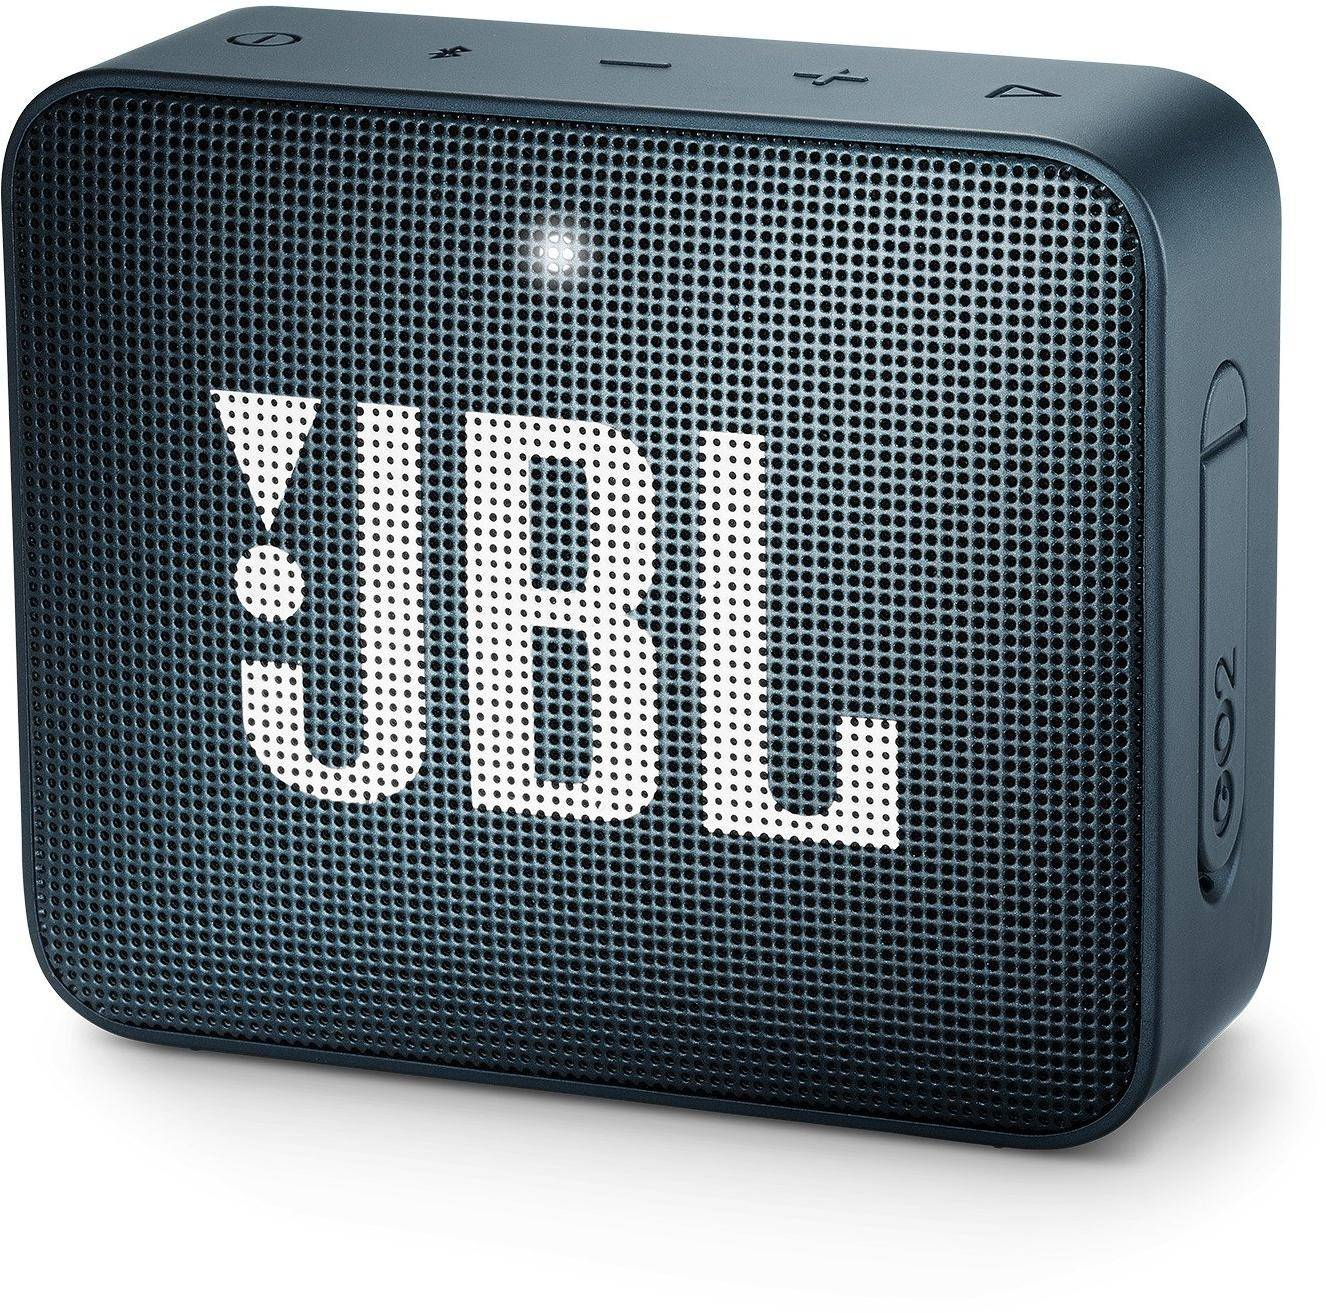 JBL GO 2 Portable Bluetooth Waterproof Speaker With Mic zoom image